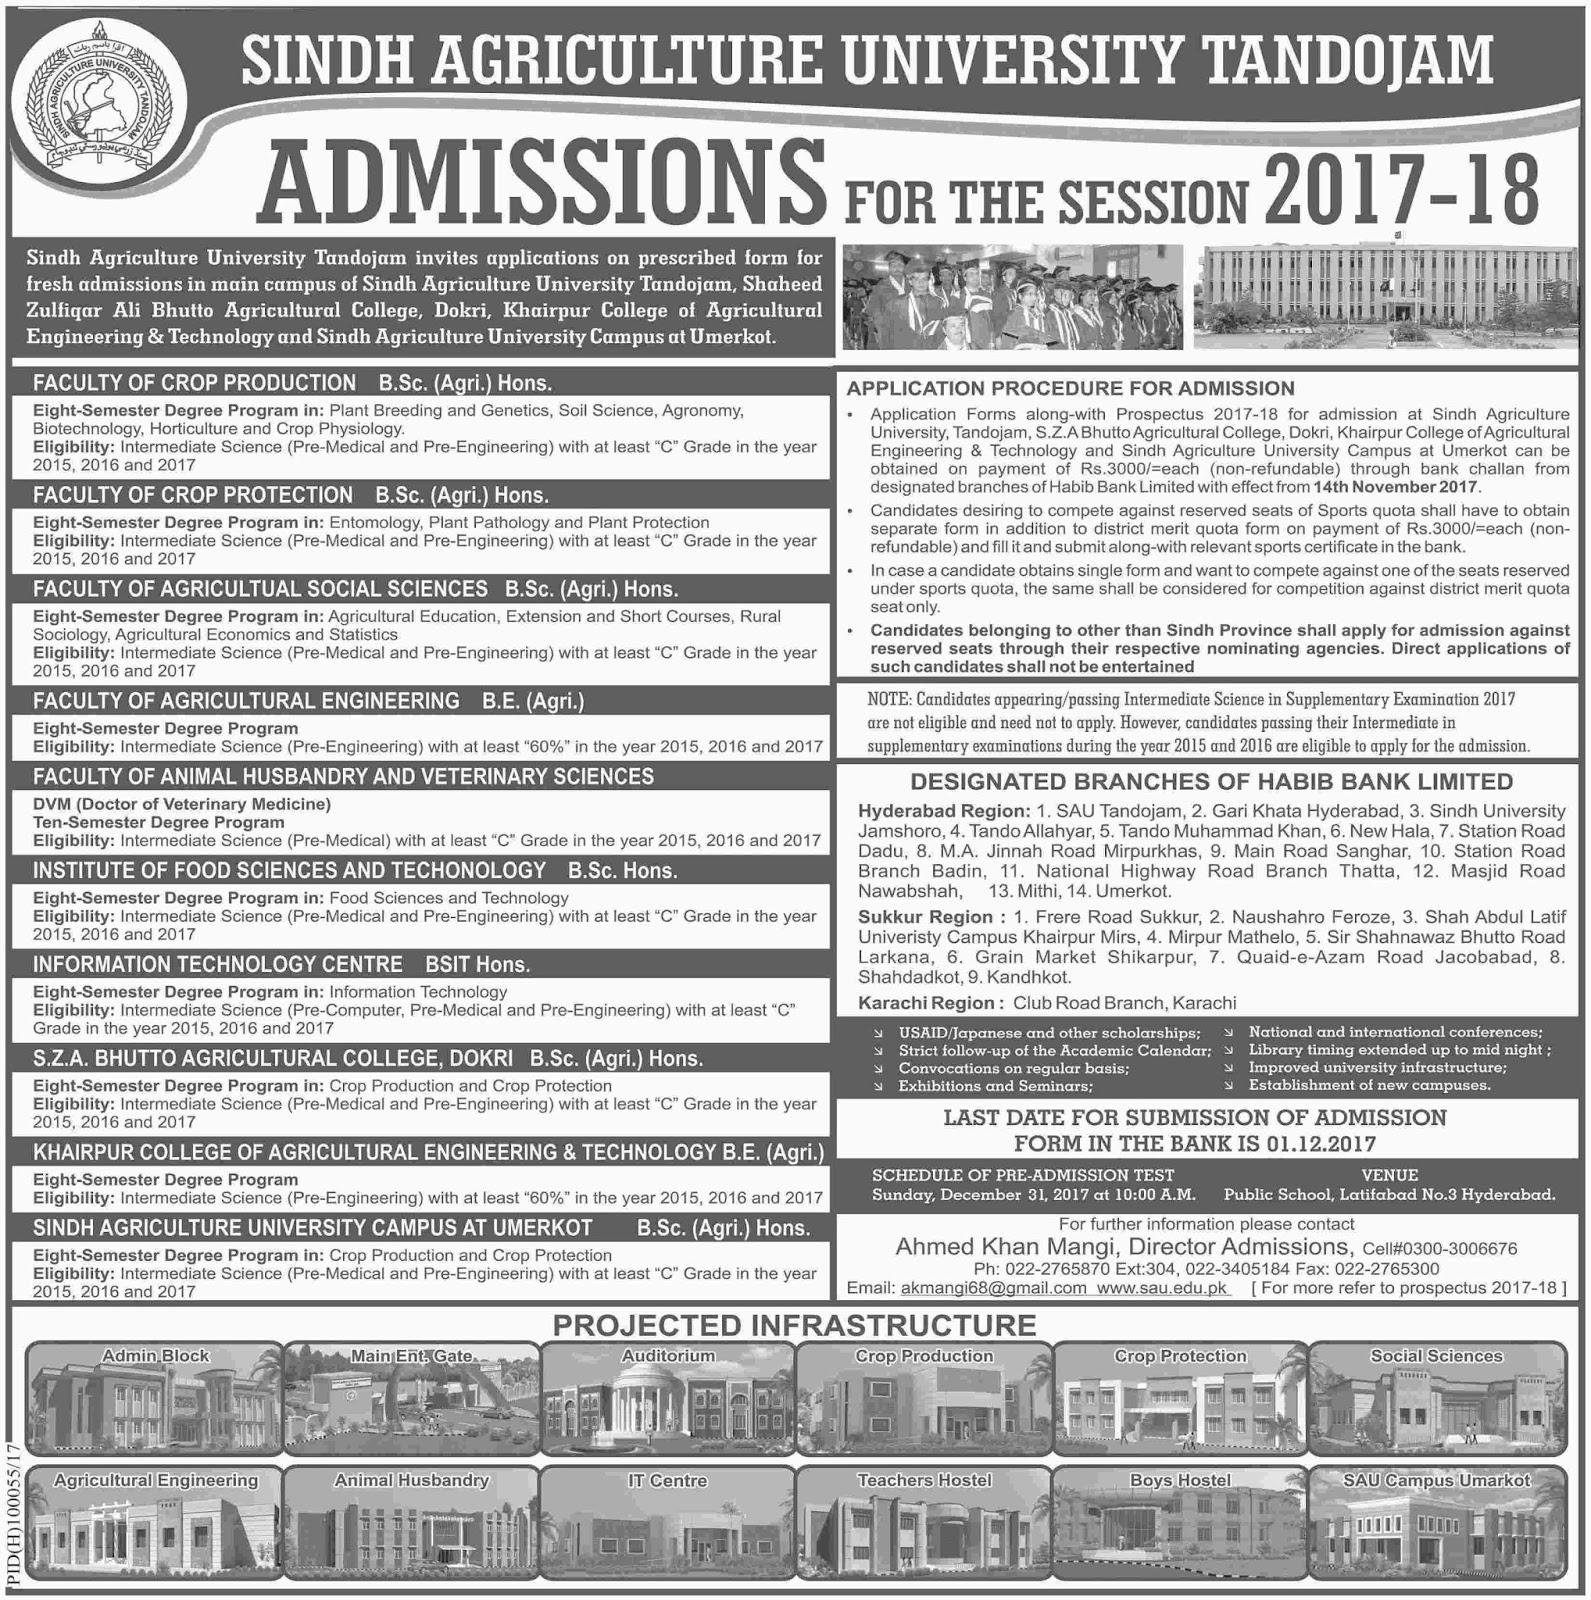 Admissions Open in Sindh Agriculture University - Tandojam